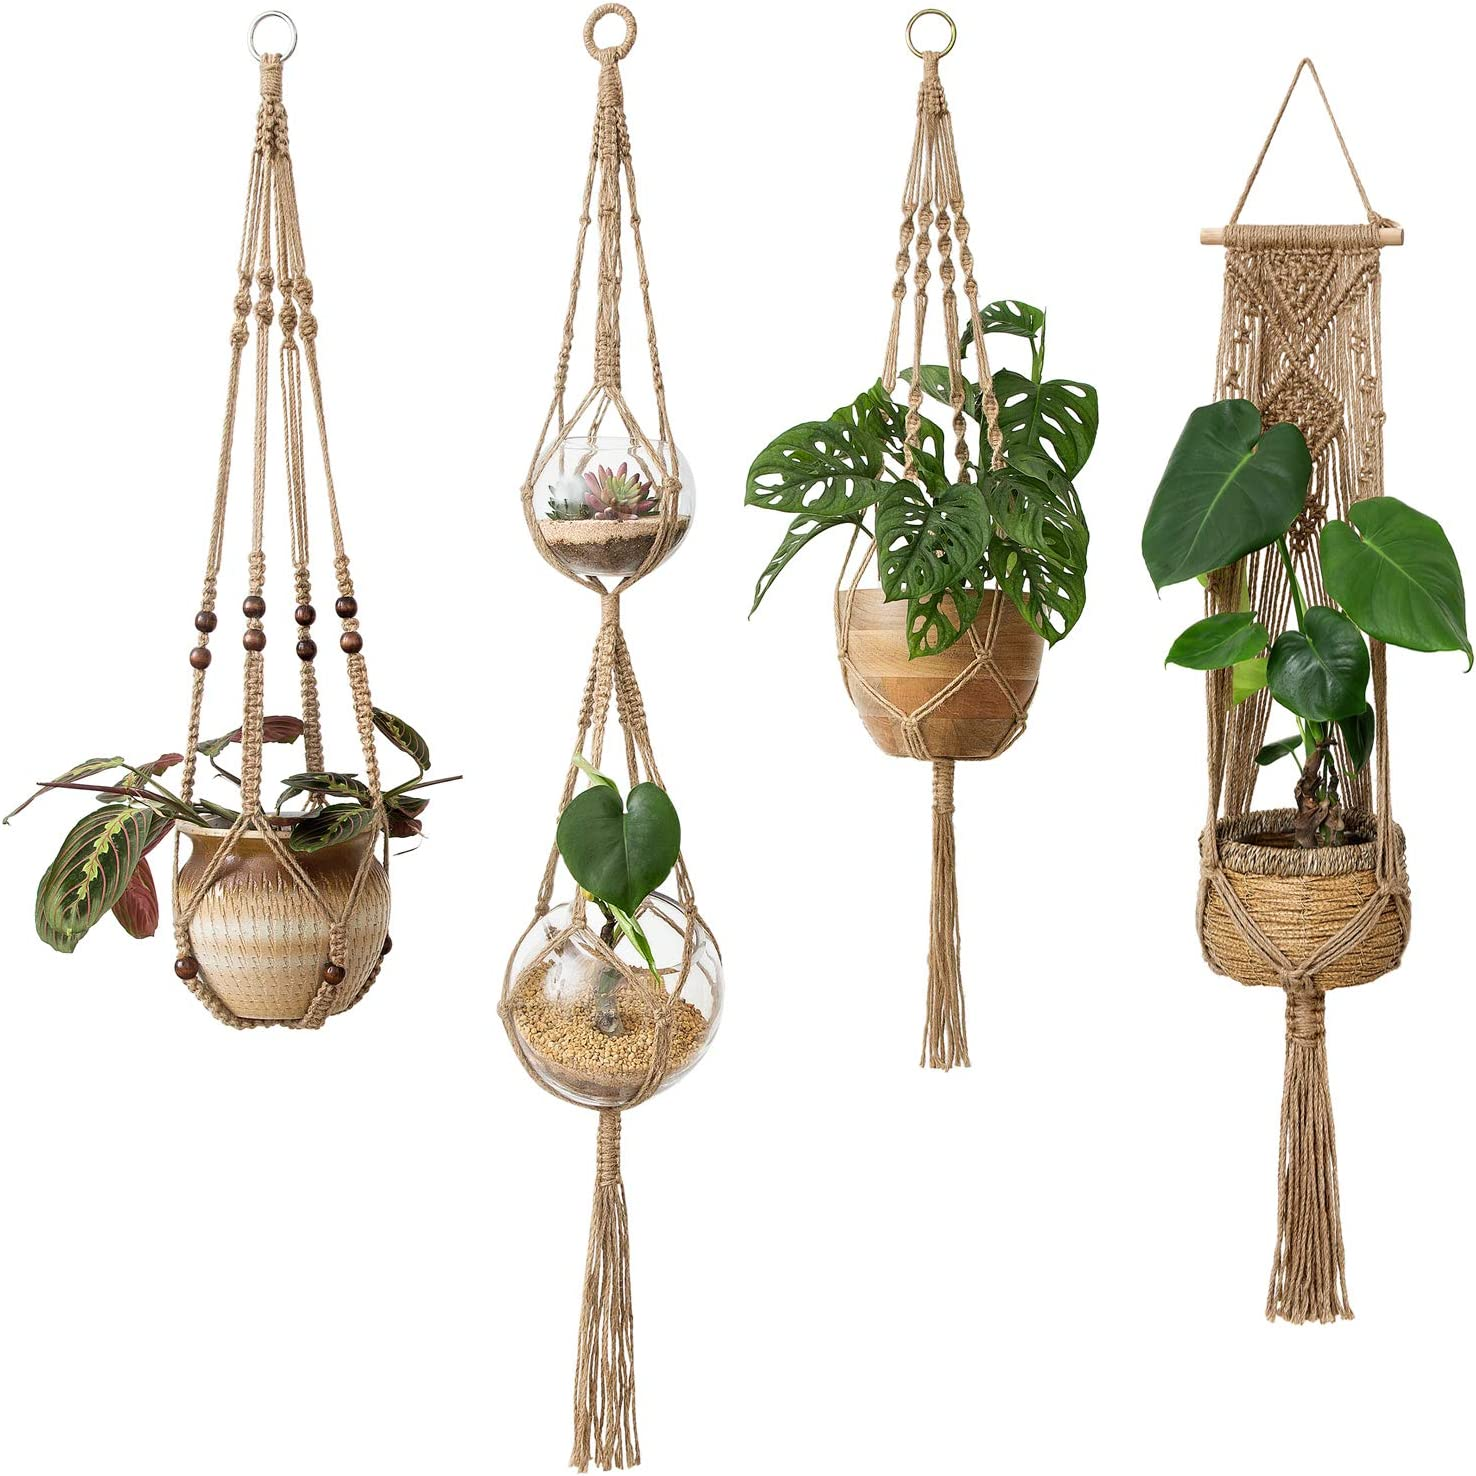 Housewarming Gift For Her Plant Lovers Outdoor Pot Holder Blue Polycord Macrame Plant Hanger Large 54 Sturdy Hanging Indoor Planters